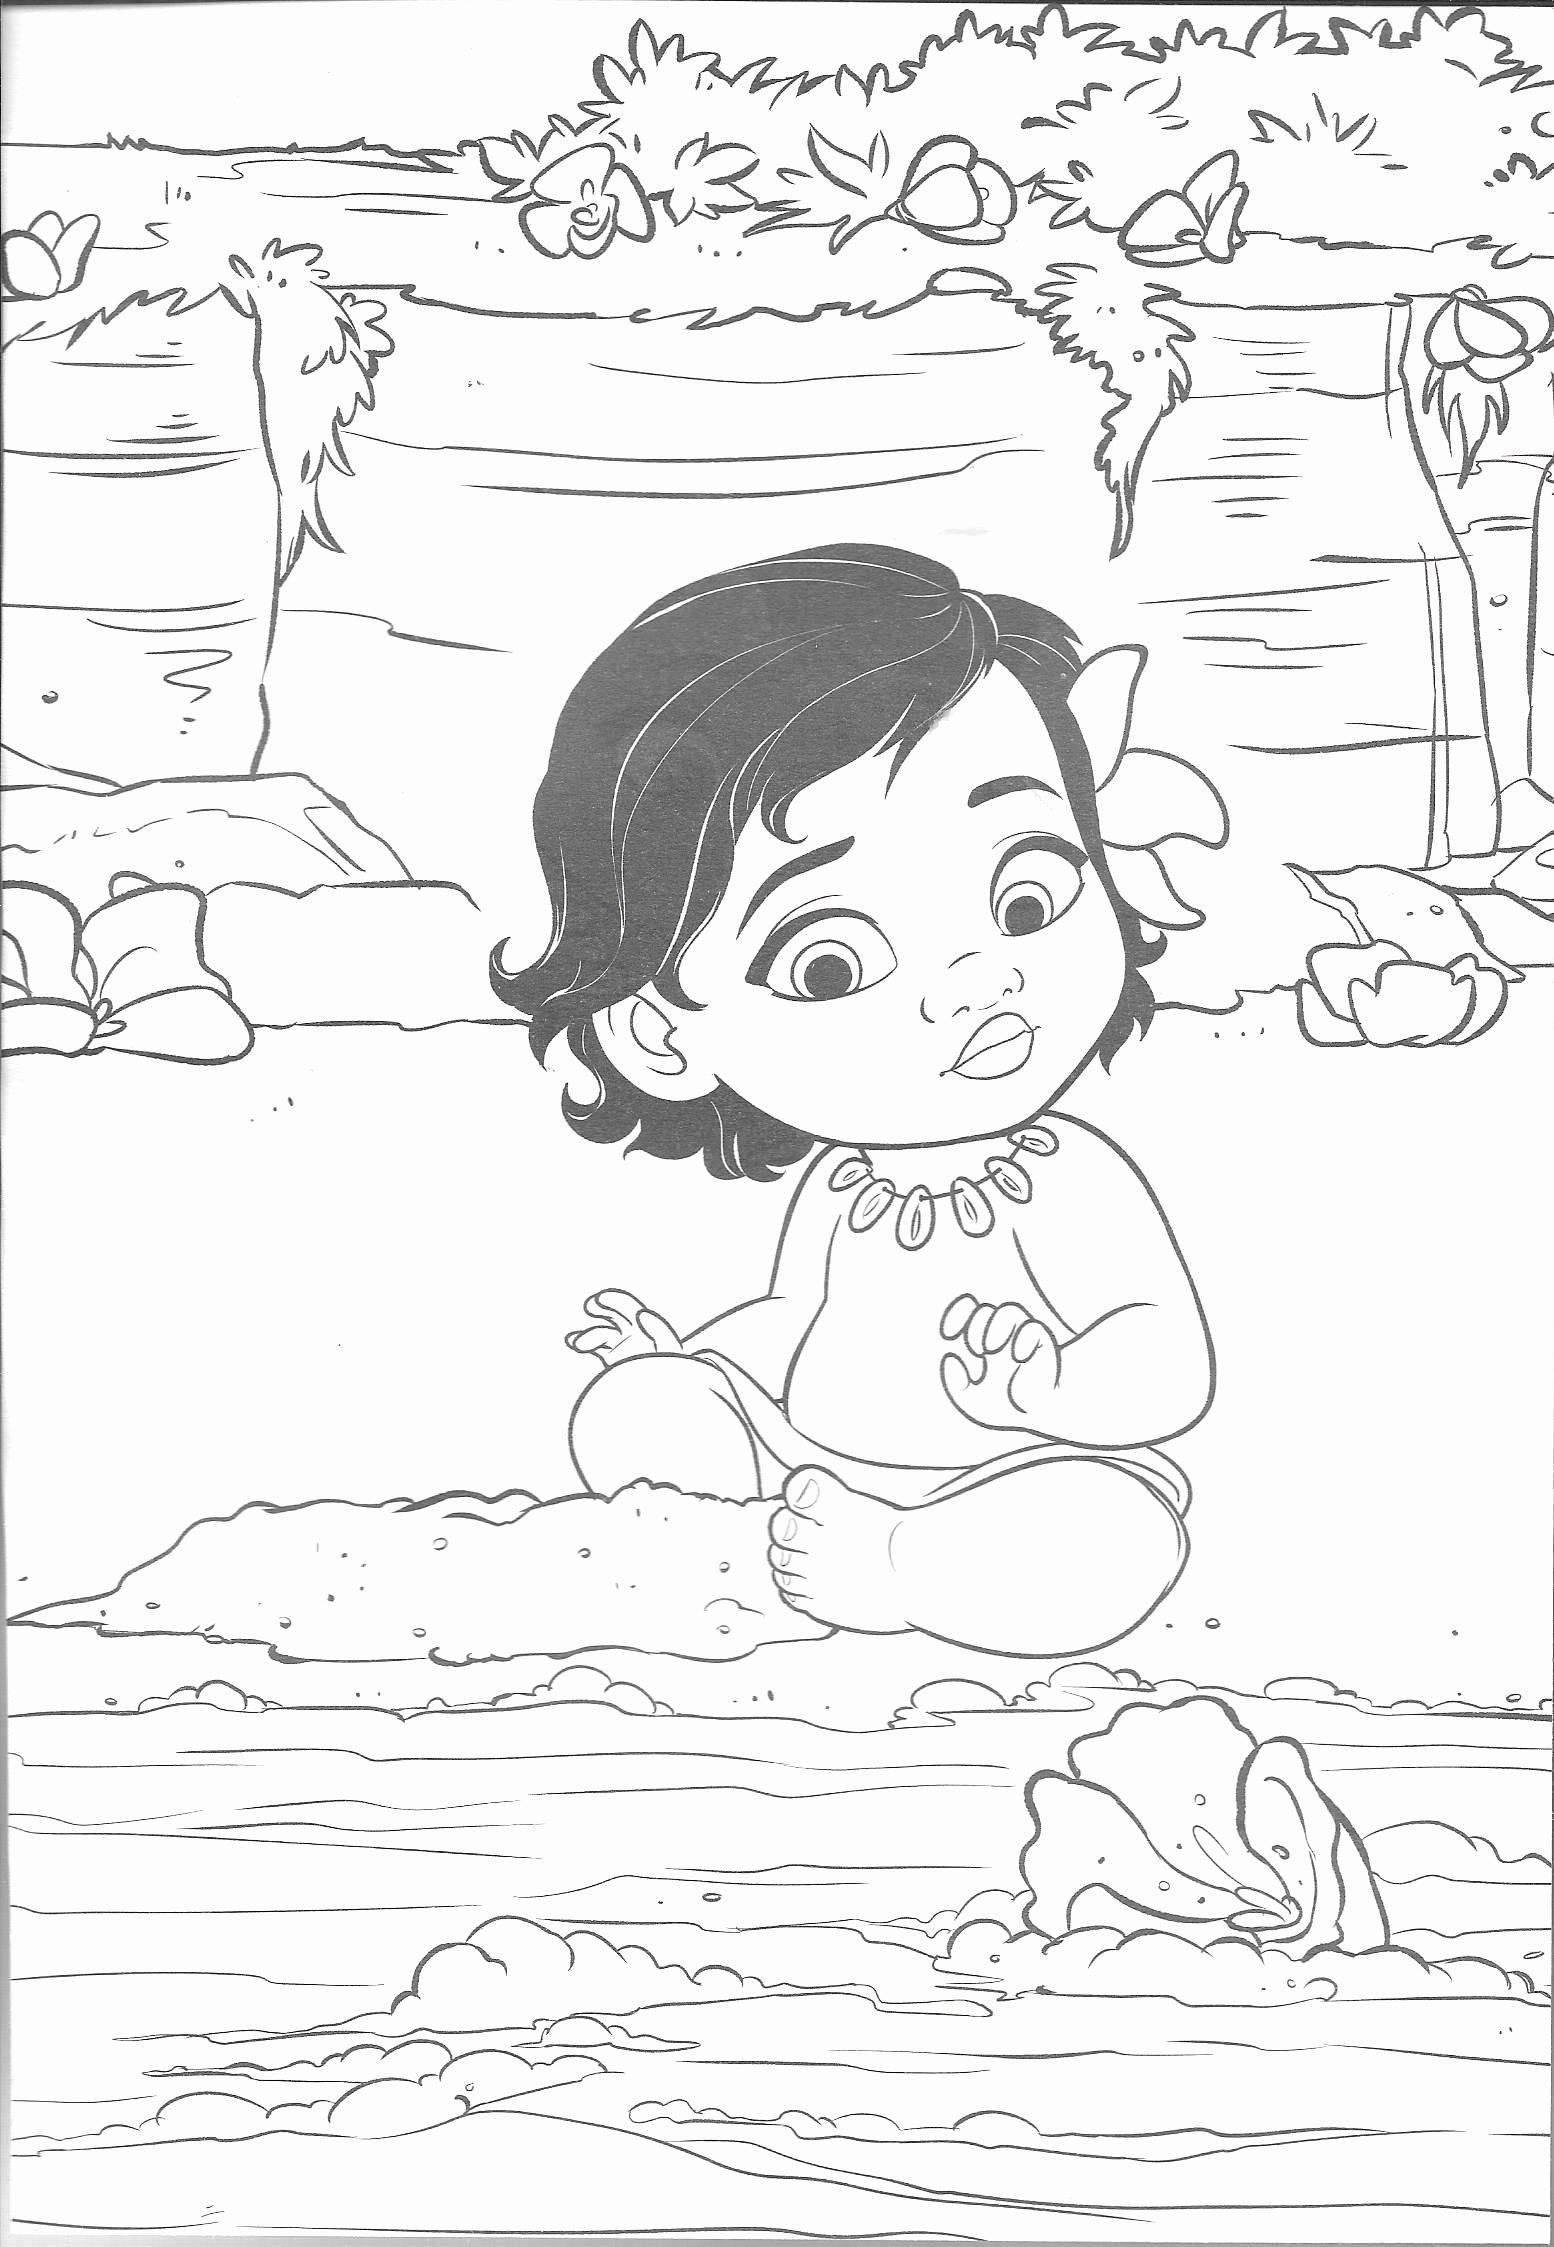 Moana Coloring Pages Disney Awesome Pin By Safa On Coloring Pages Moana Coloring Pages Moana Coloring Disney Coloring Pages [ 2247 x 1554 Pixel ]